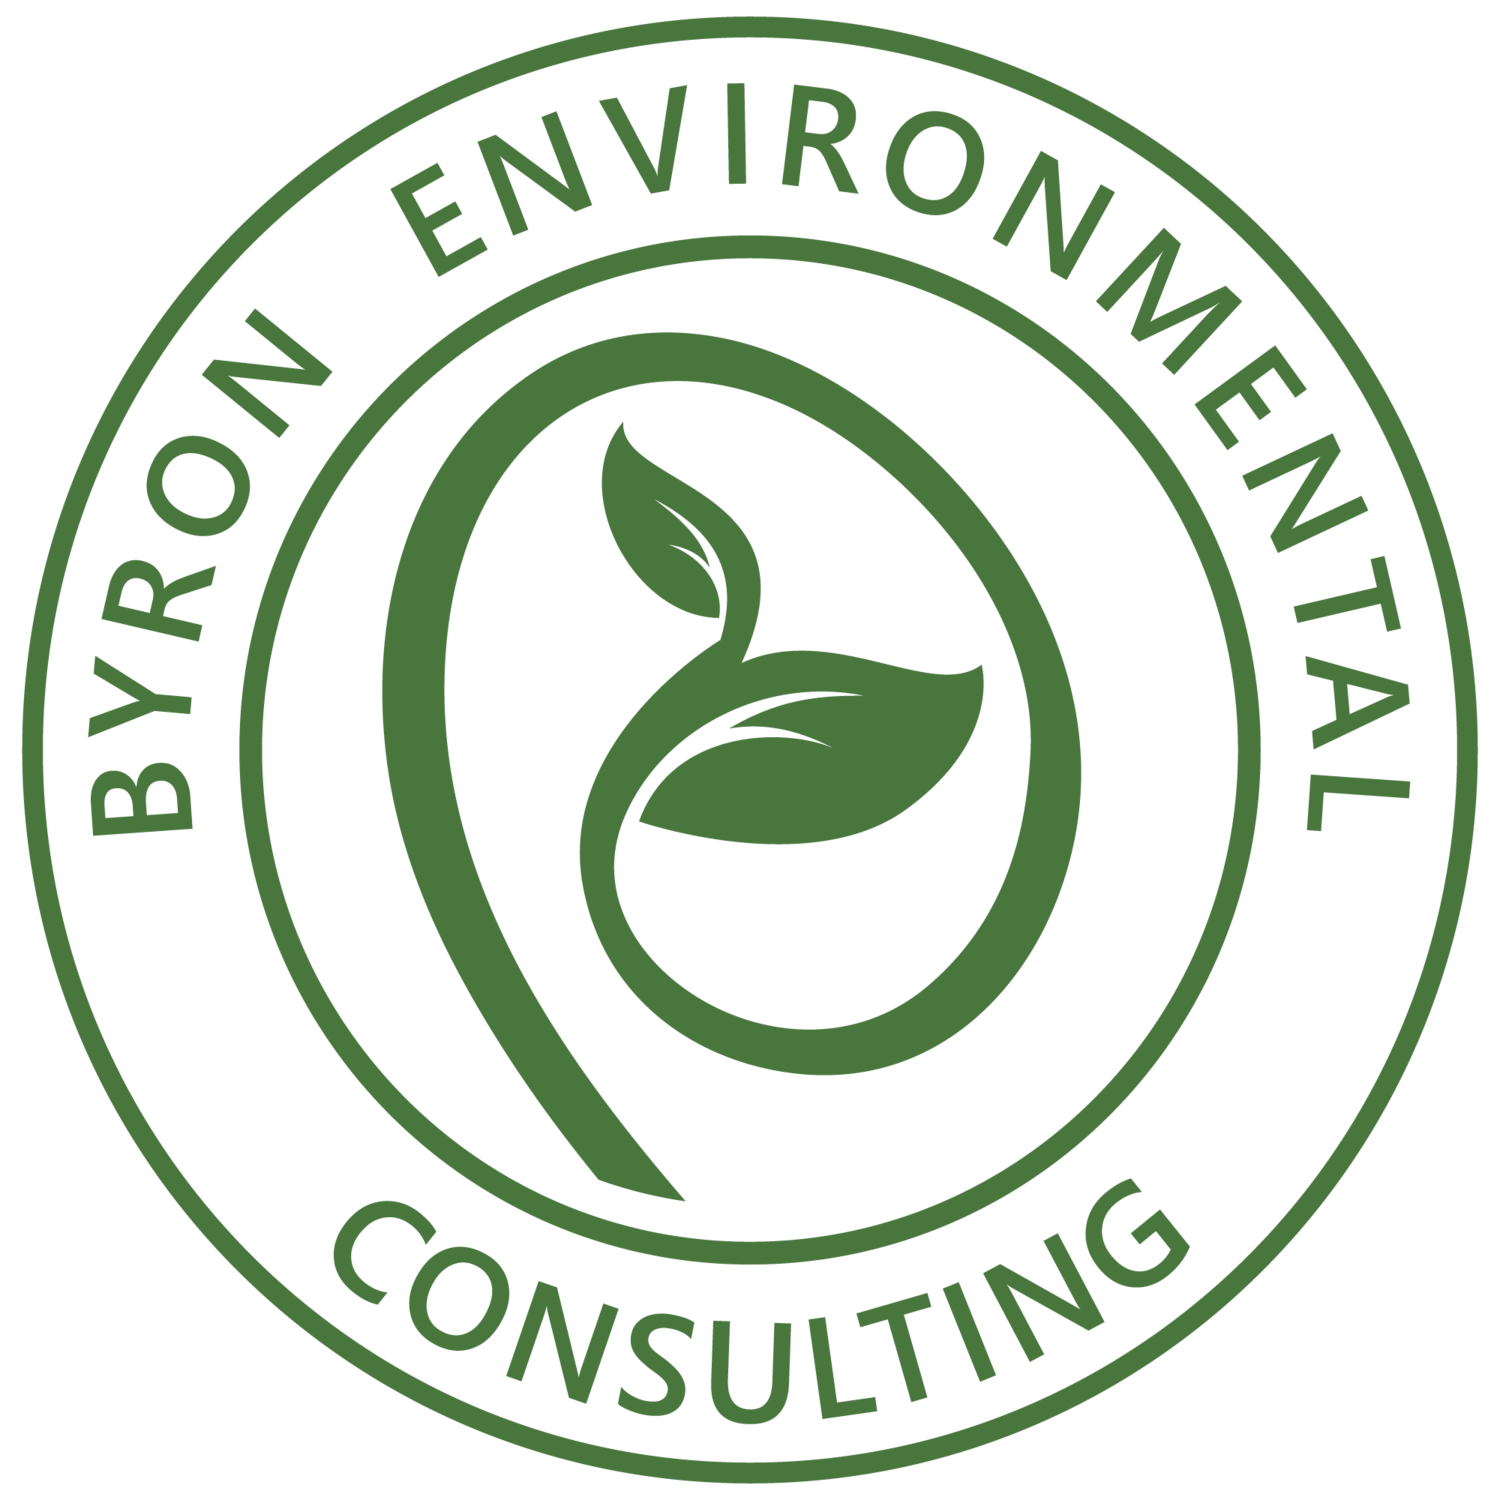 Byron Environmental Consulting